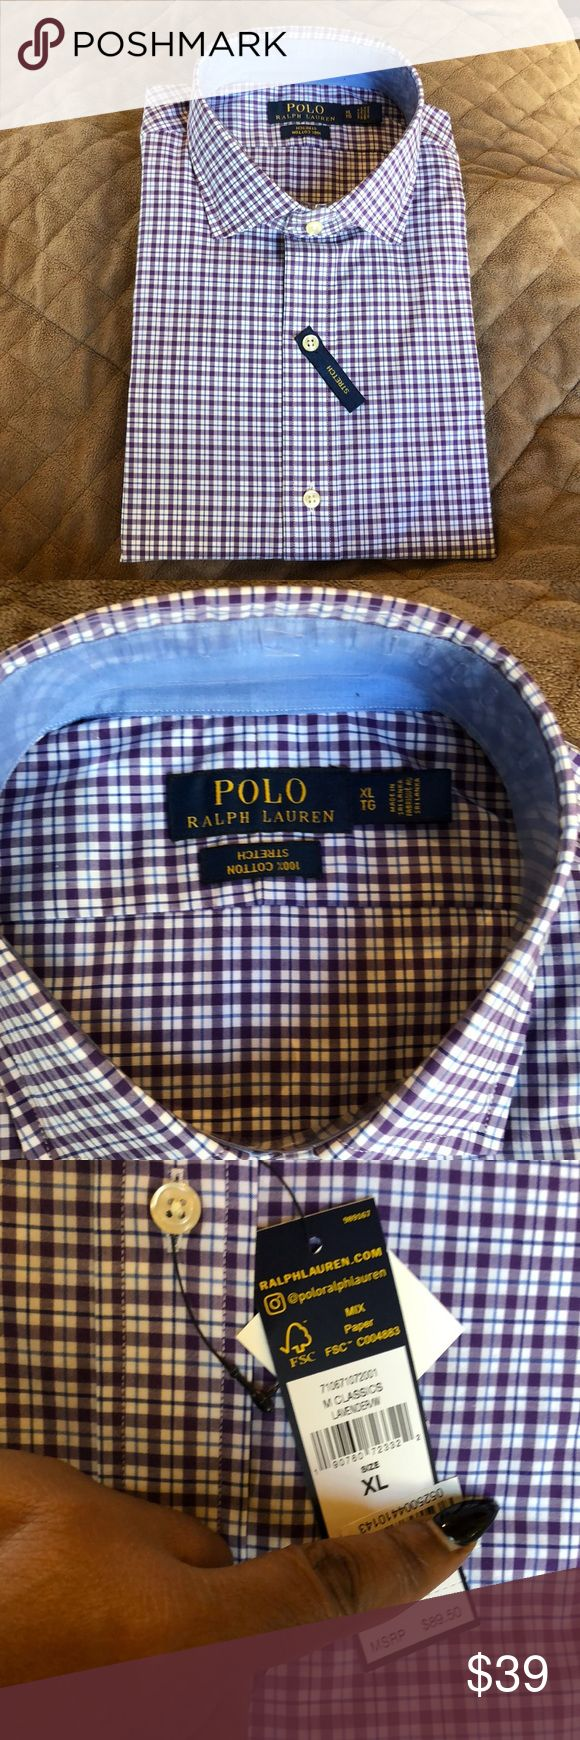 POLO RALPH LAUREN MENS SHIRT Checkered shirt consist of purple, navy & white colors. Size XL. MENS. 100% cotton with stretch. Polo by Ralph Lauren Shirts Dress Shirts